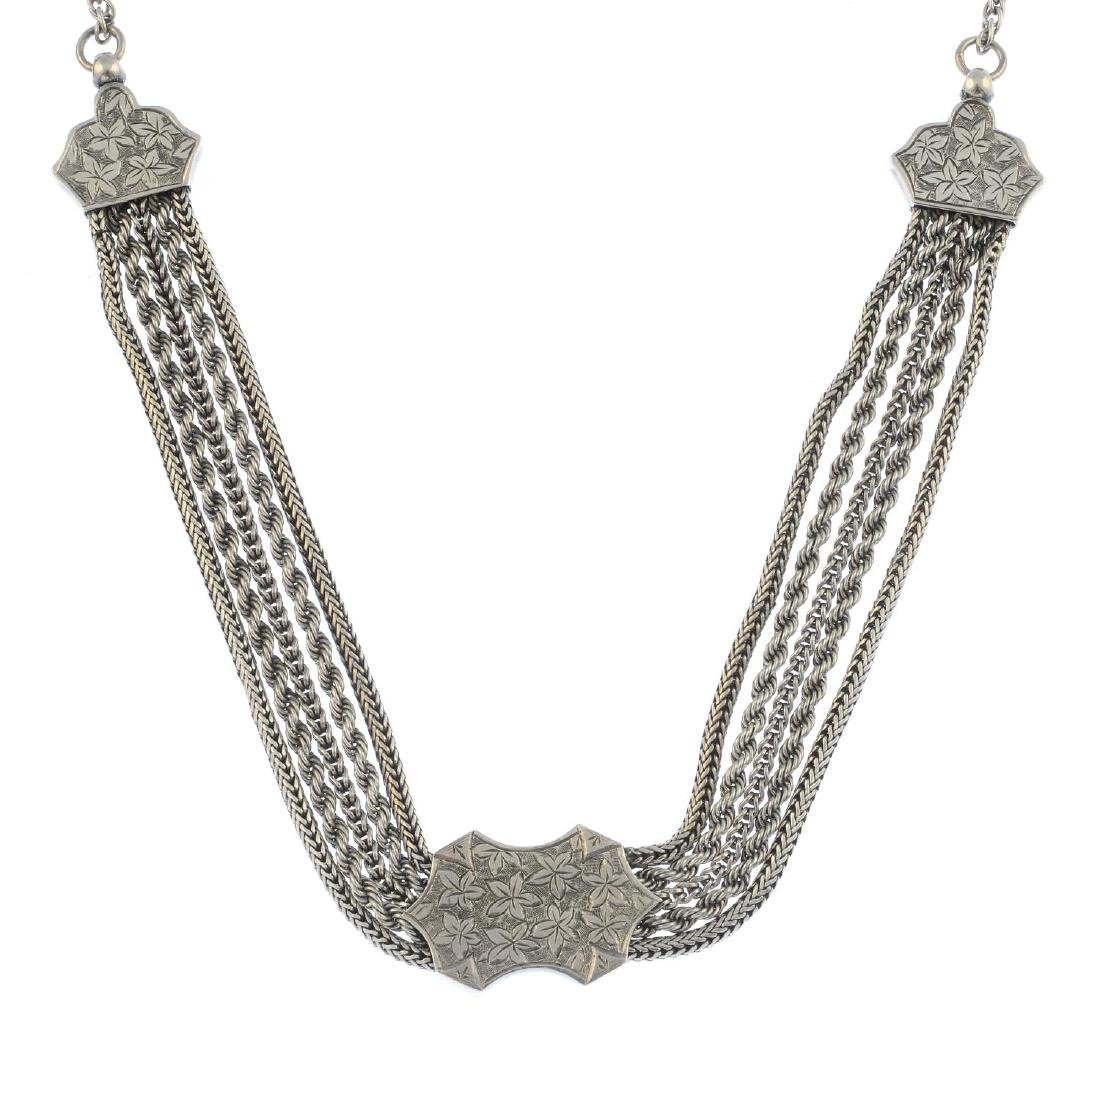 A selection of silver jewellery and further items. To